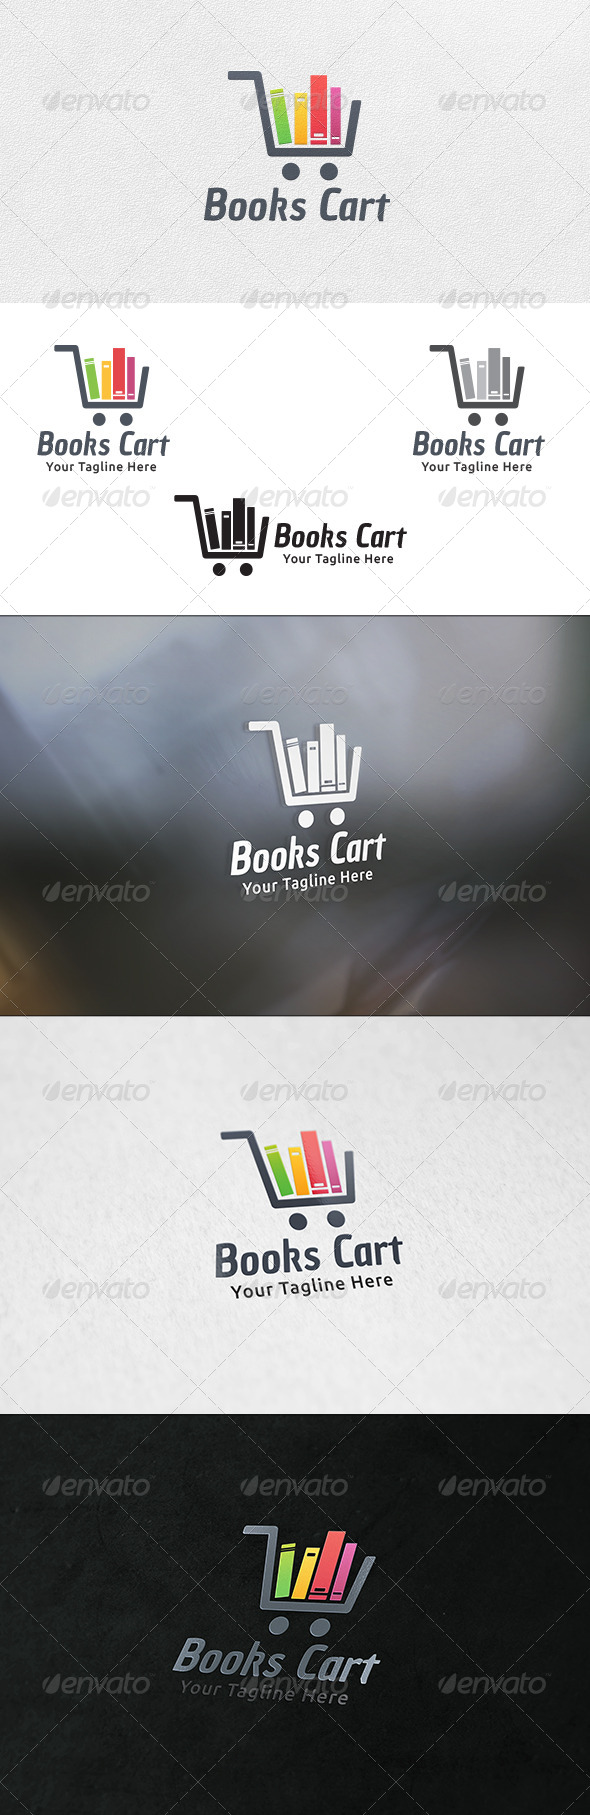 Books Cart - Logo Template - Objects Logo Templates